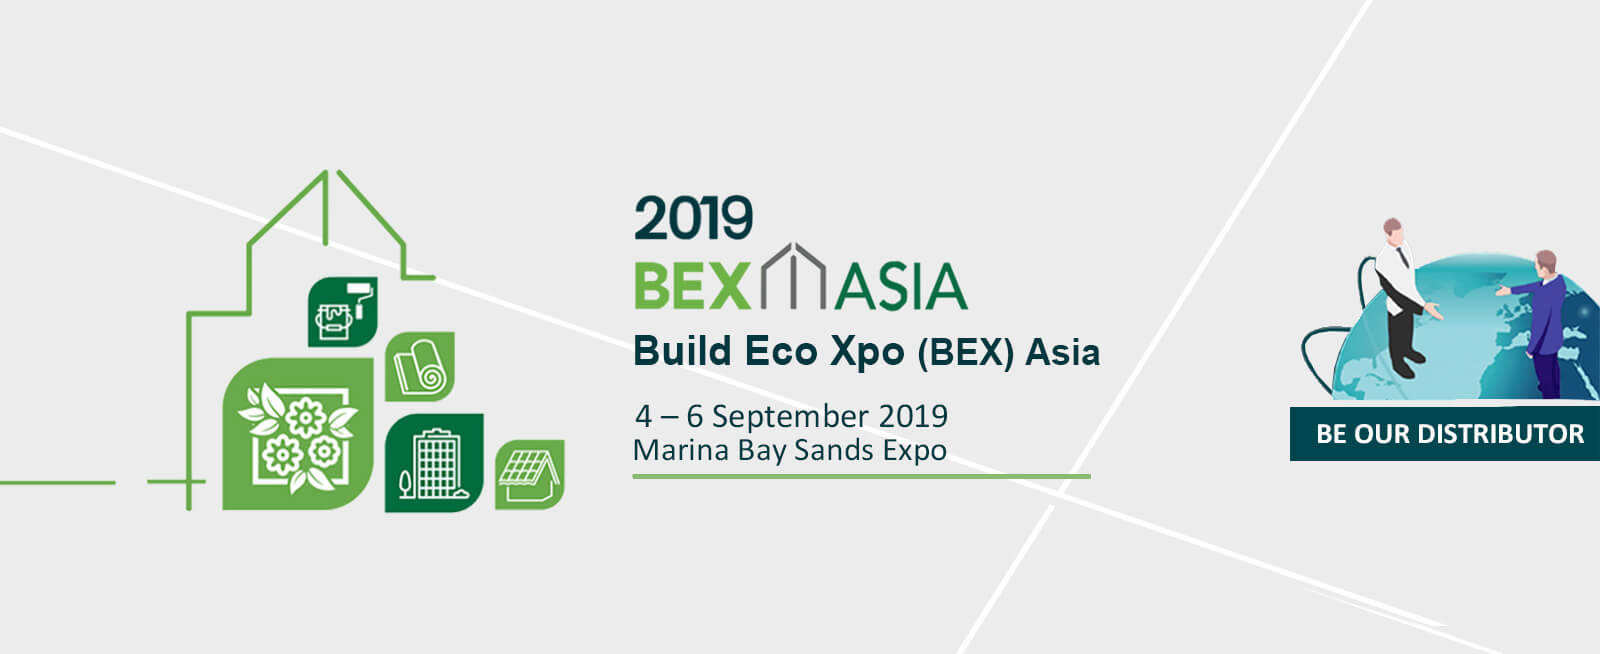 September 2019 Bex Asia Singapore Green & Quality Building Materials Exhibition